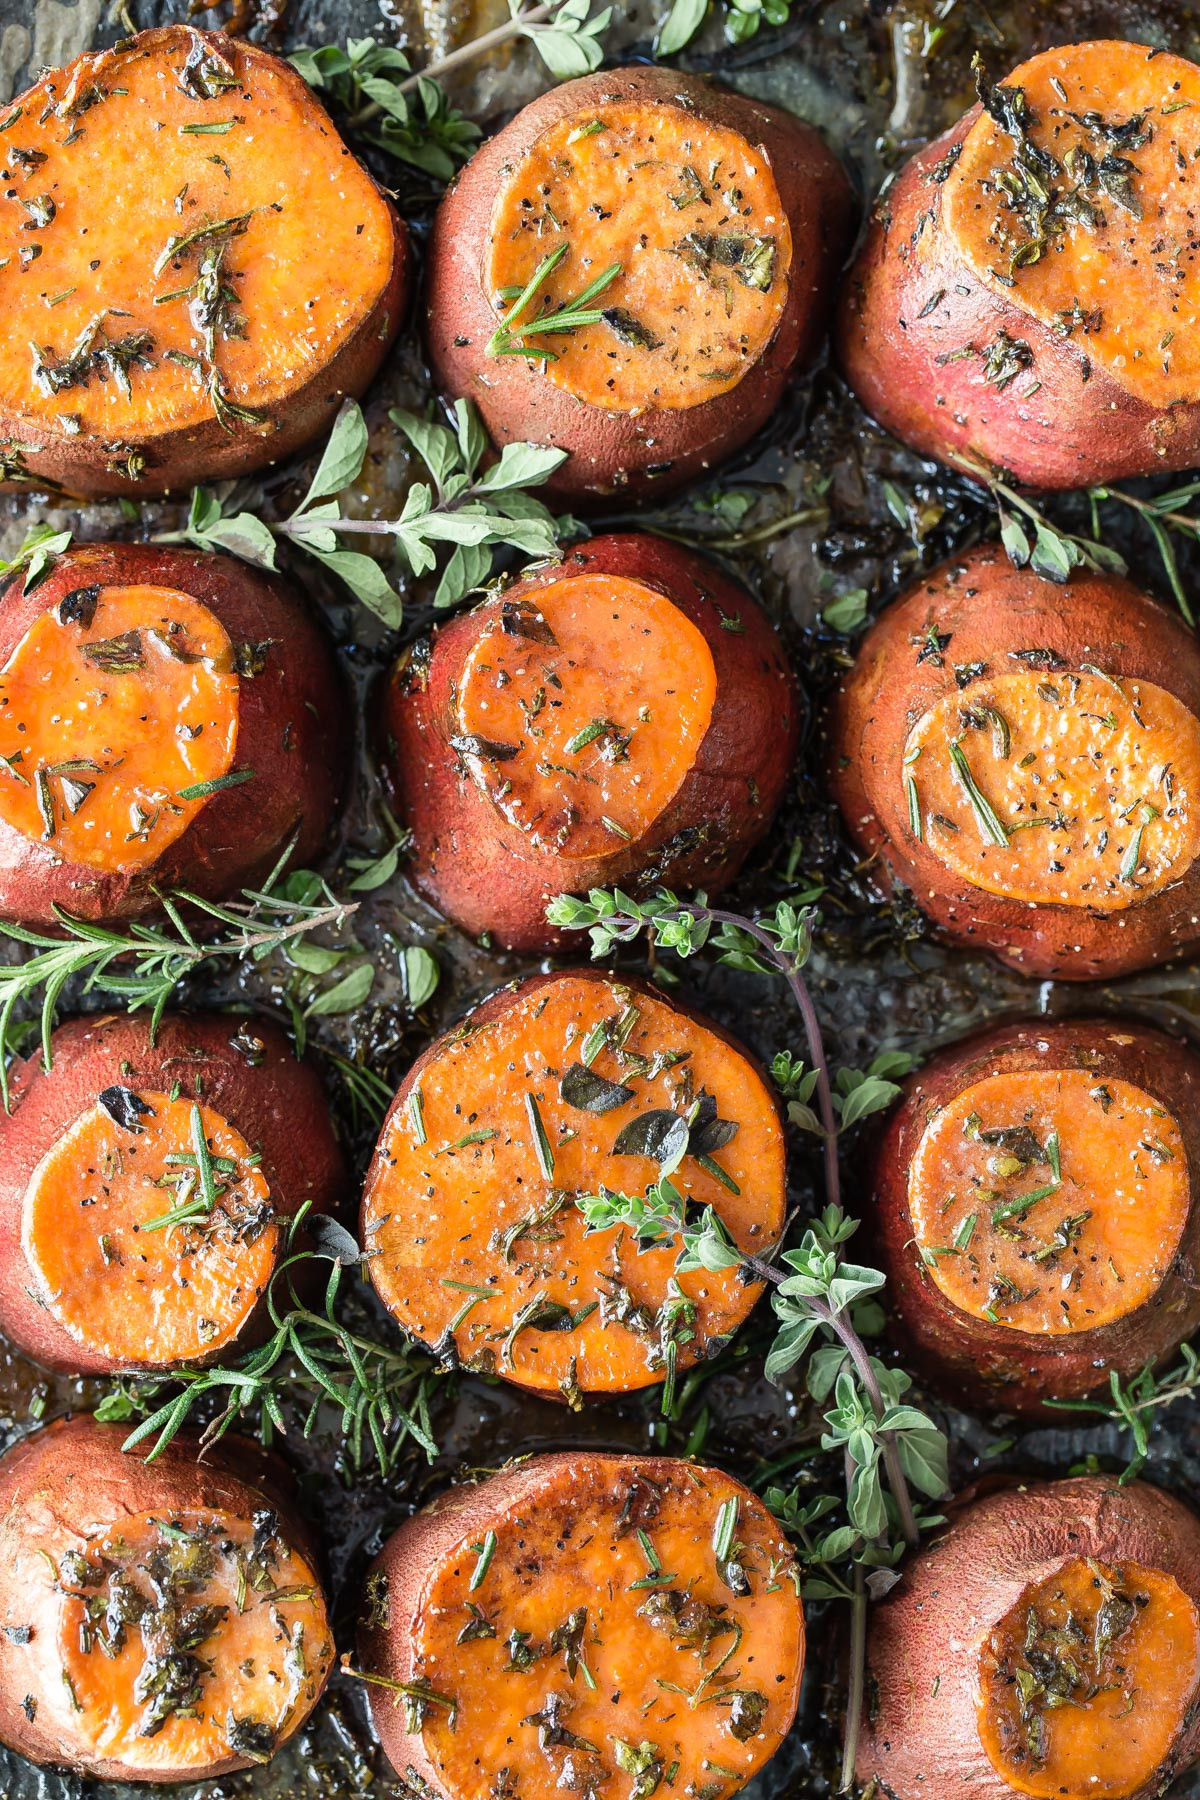 Roasted Sweet Potatoes Brown Sugar  Sweet Potatoes with Herbs and Caramelized Butter